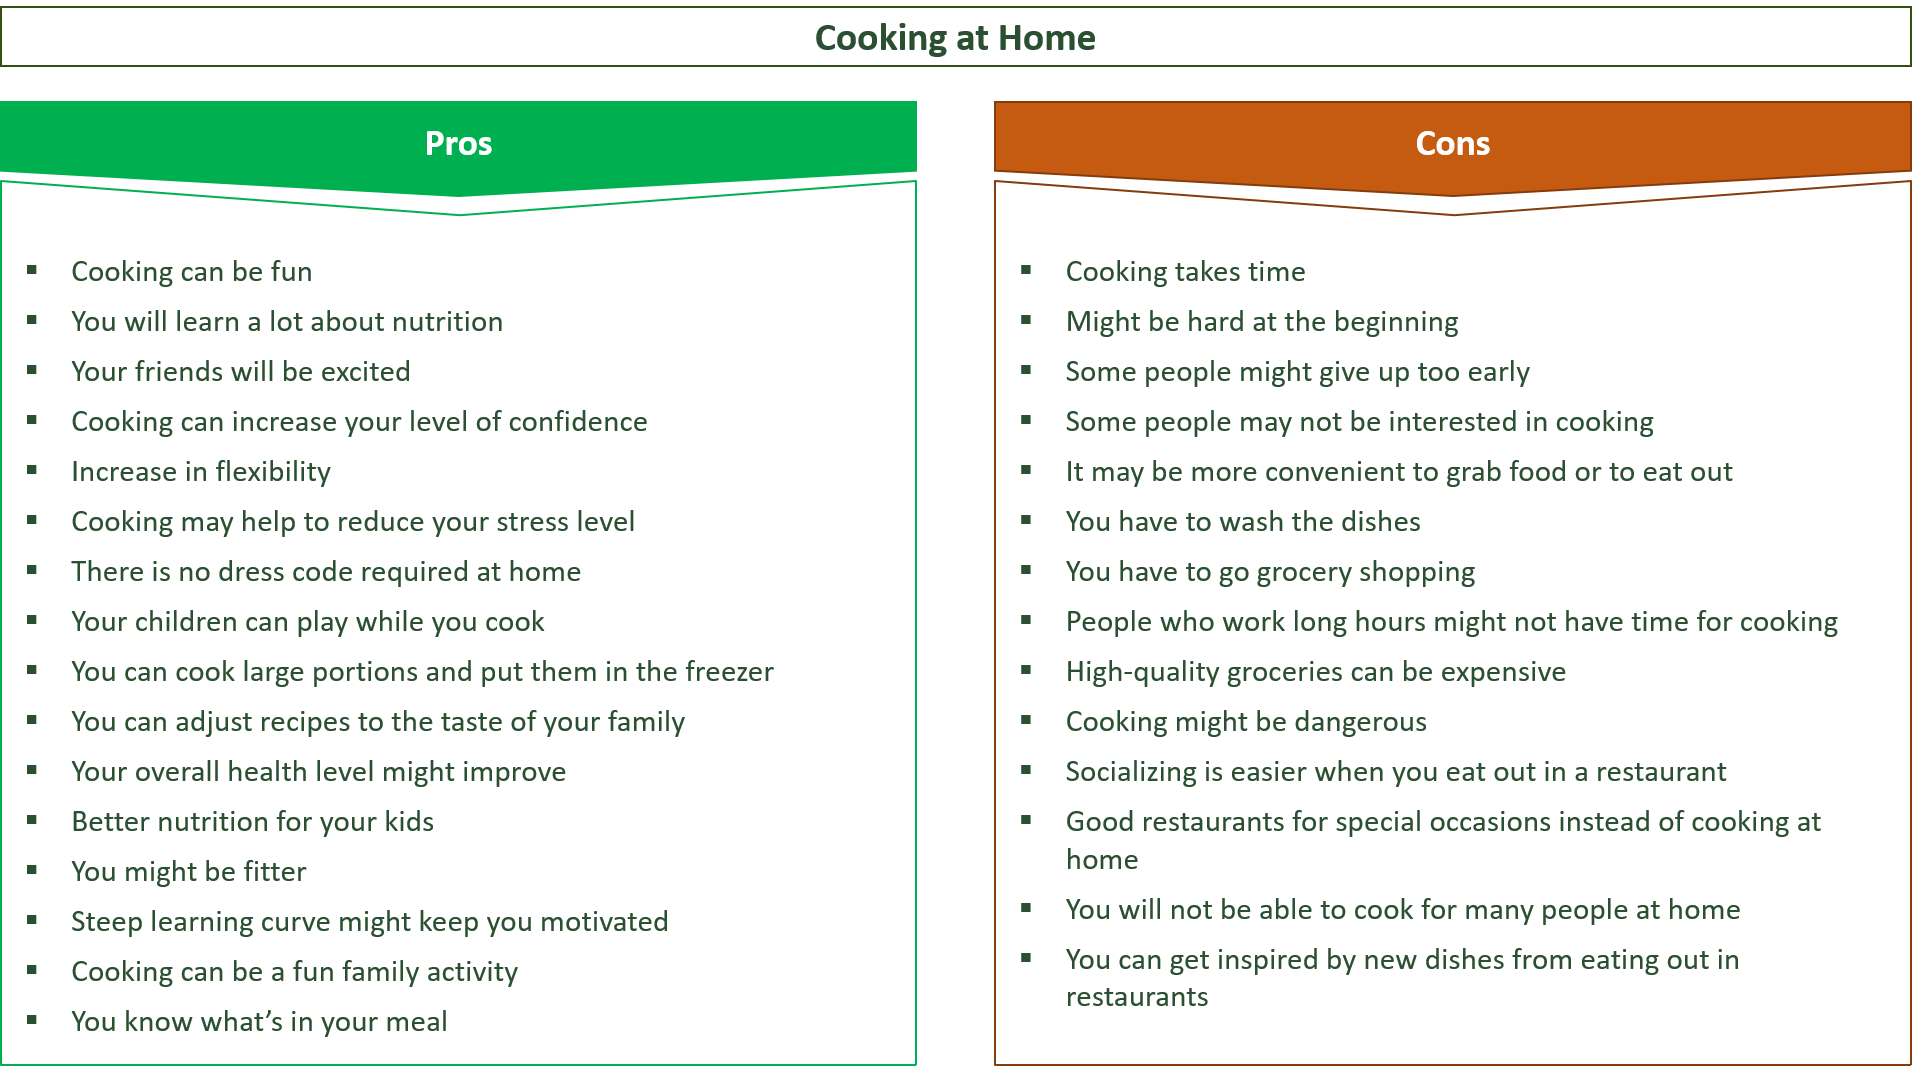 advantages and disadvantages of cooking at home compared to eating out in a restaurant